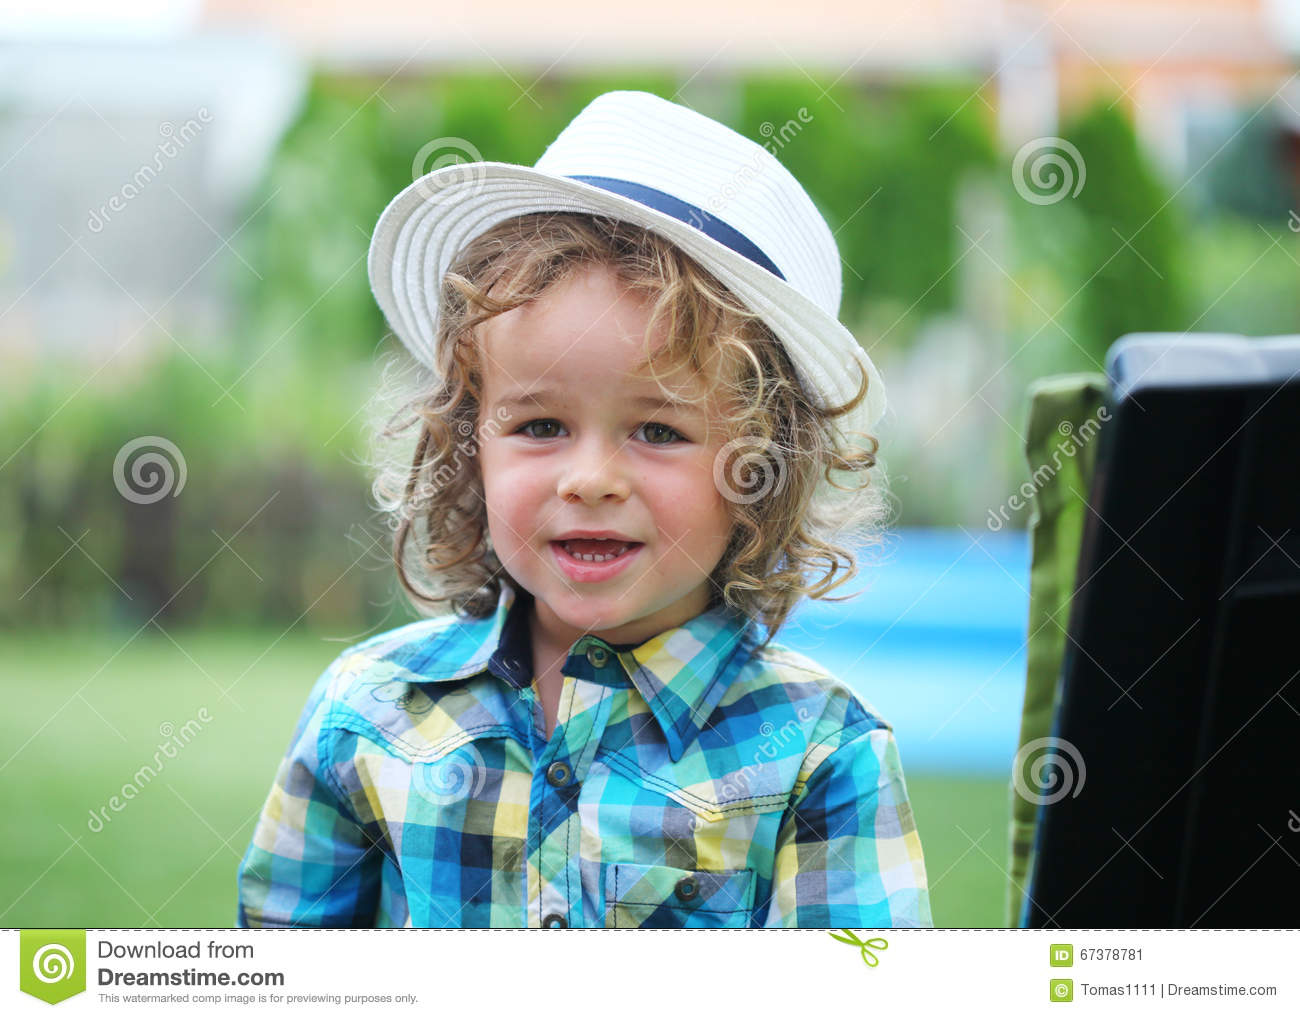 Boy with fashion hat in nature